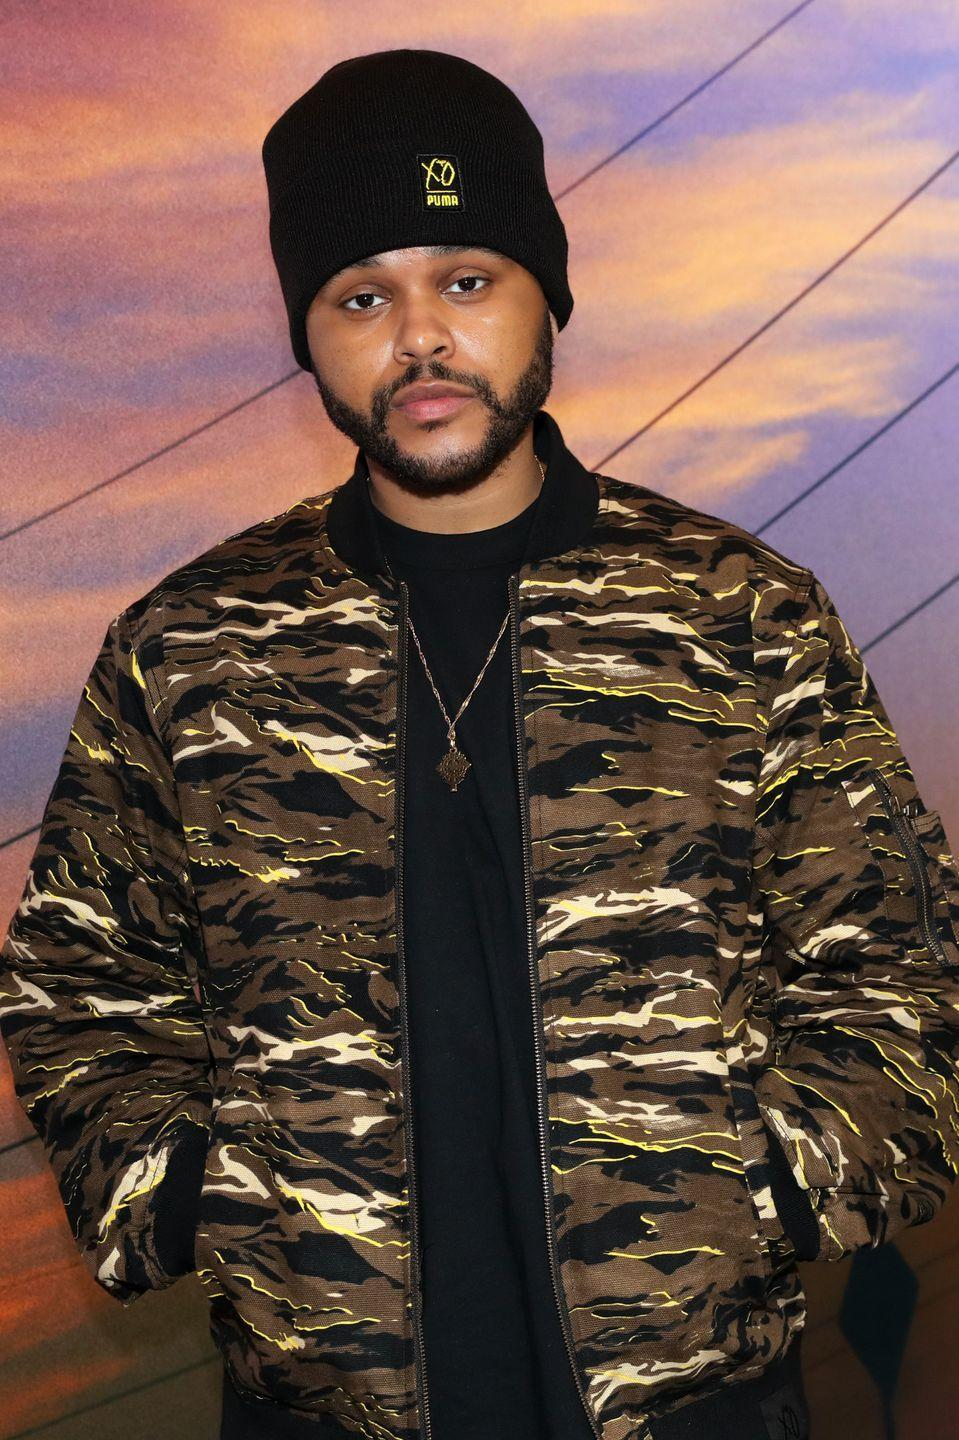 <p>Is he growing his hair out? Has he chopped it off? It all remained a mystery during what we'll refer to as The Weeknd's hat phase. </p>